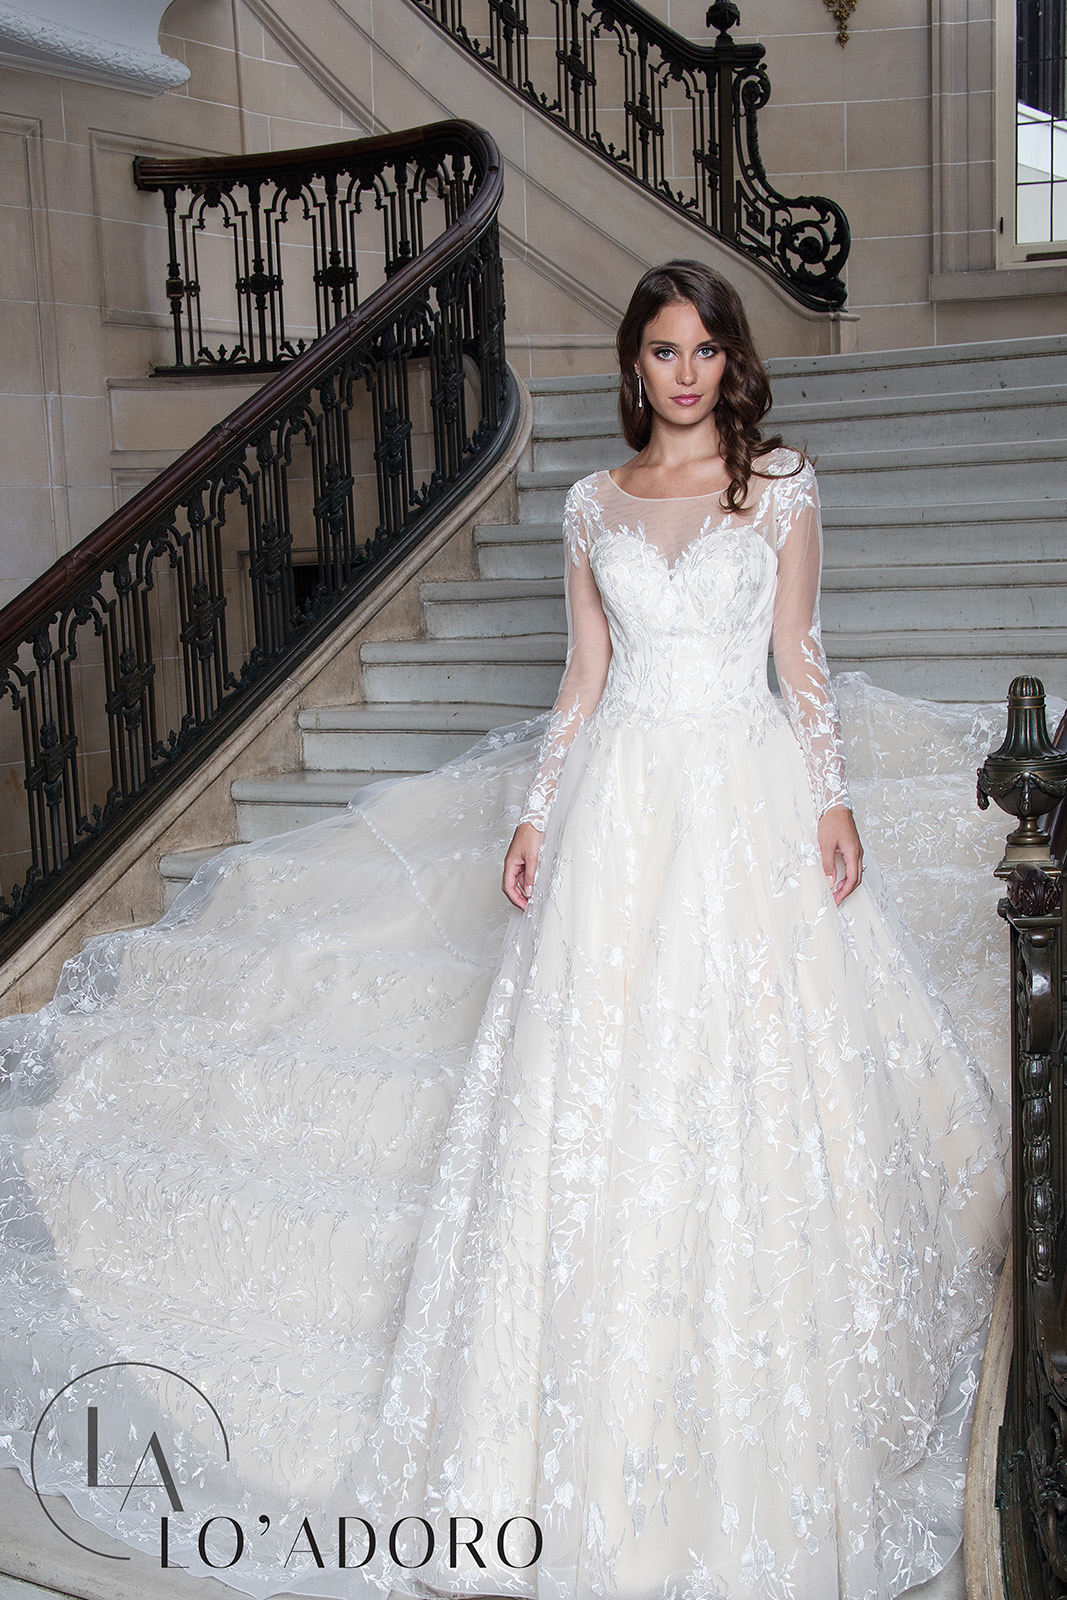 Sheer Ball Gowns Lo' Adoro Bridal in White Color